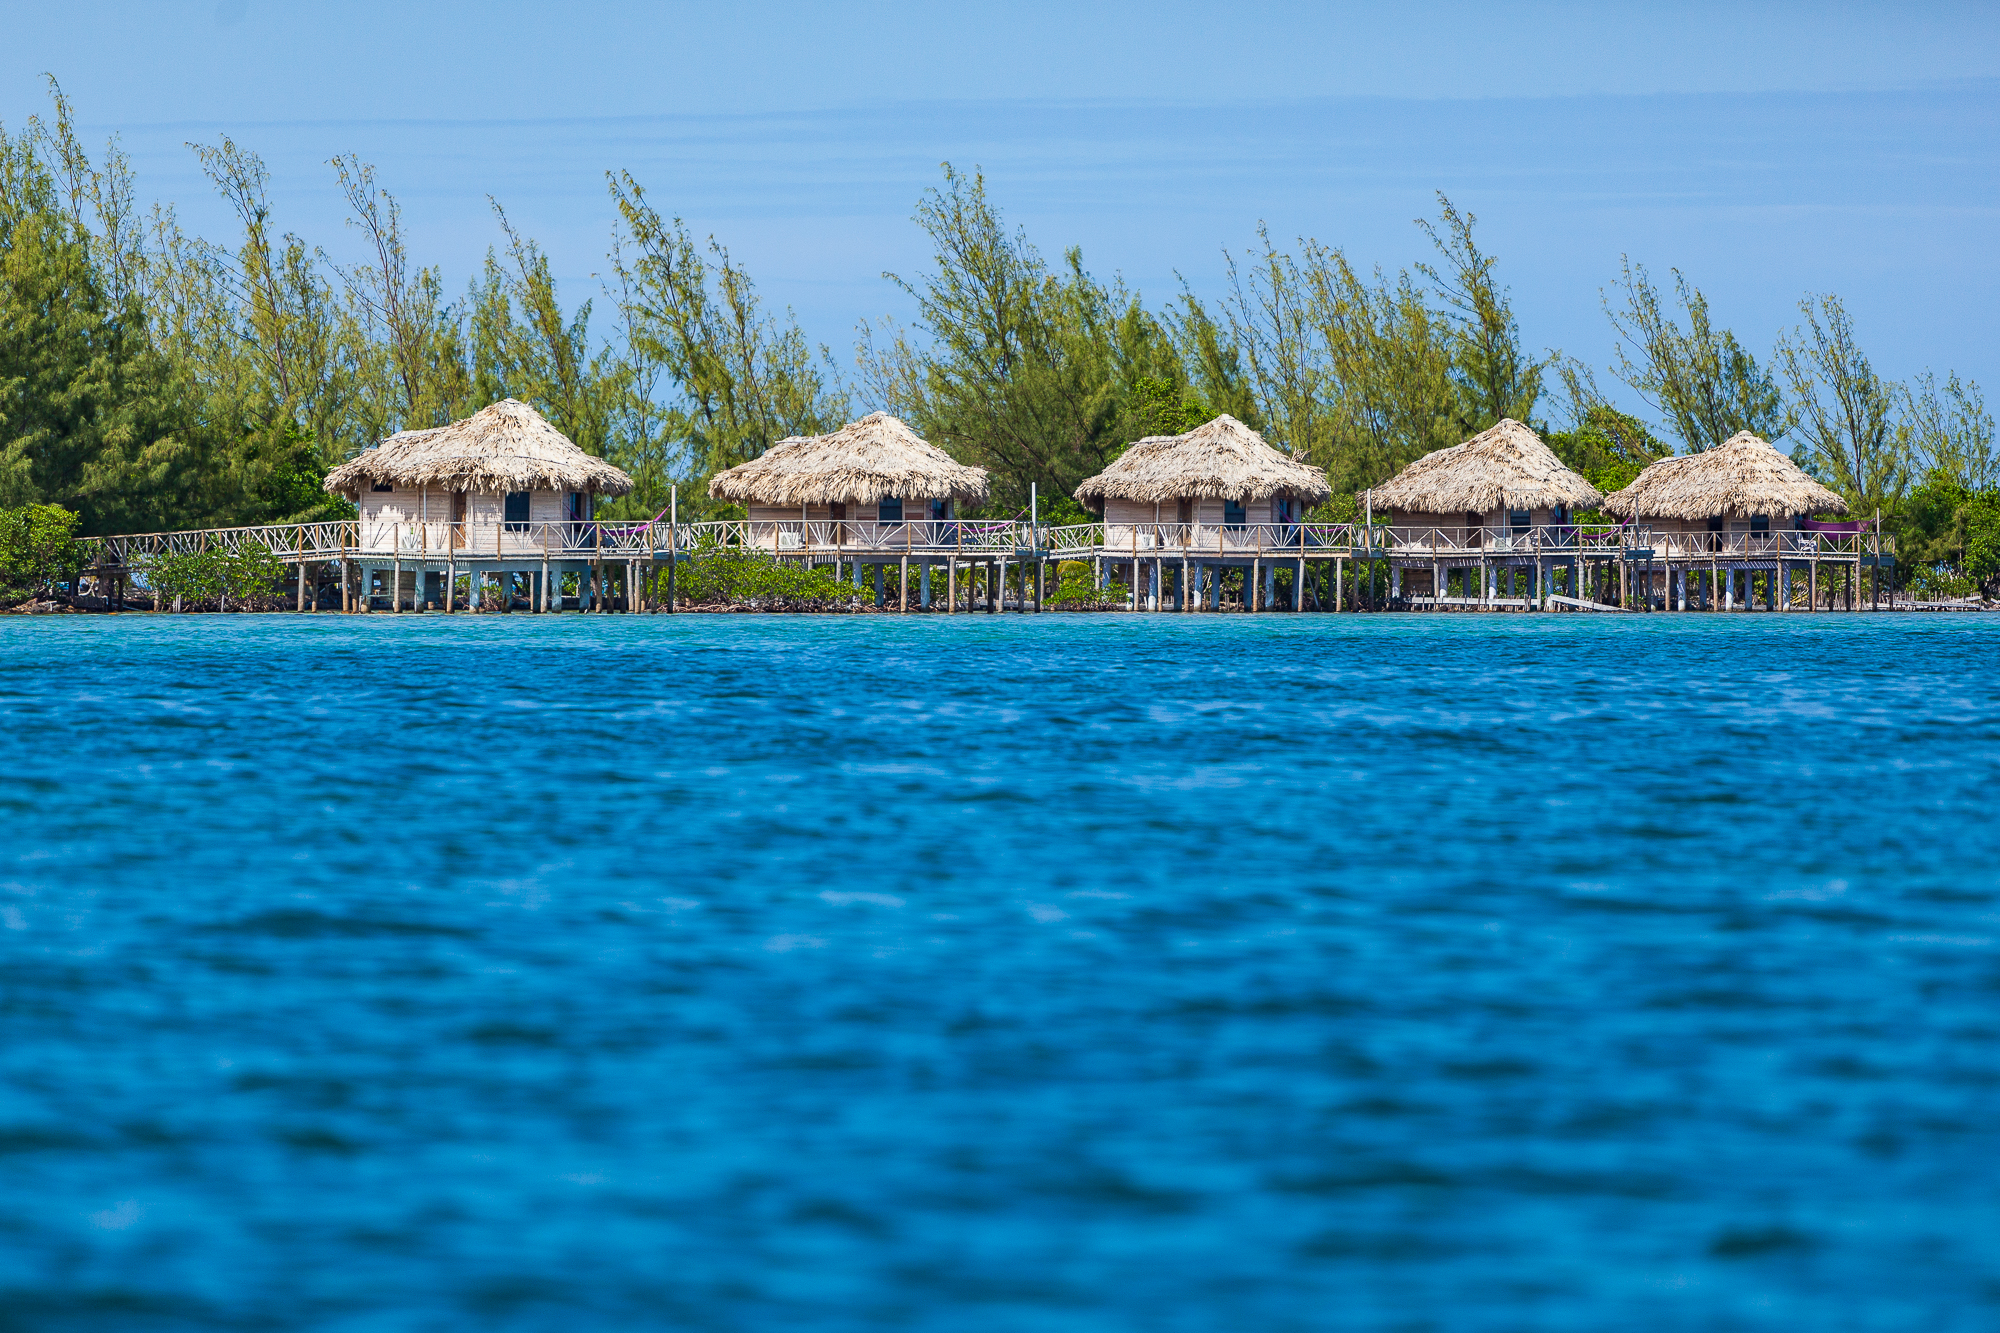 Overwater Bungalows - Taken By Dylan Rose